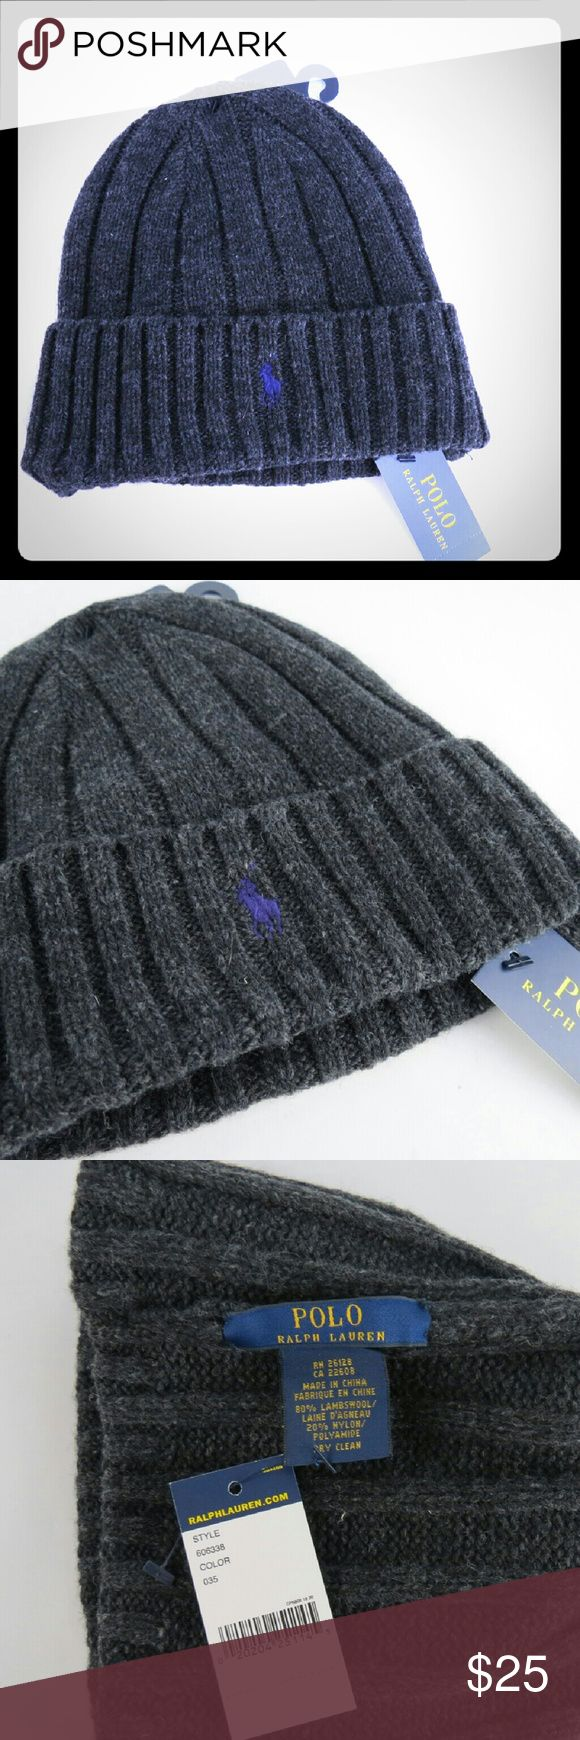 Ralph Lauren POLO Charcoal Gray Knit Cap Beanie NWT POLO Ralph Lauren Charcoal Gray knit cap, small pony purple embroidered logo, (logo looks bluer in photo than it is in real life).  80% Lambswool, 20% Nylon. Polo by Ralph Lauren Accessories Hats